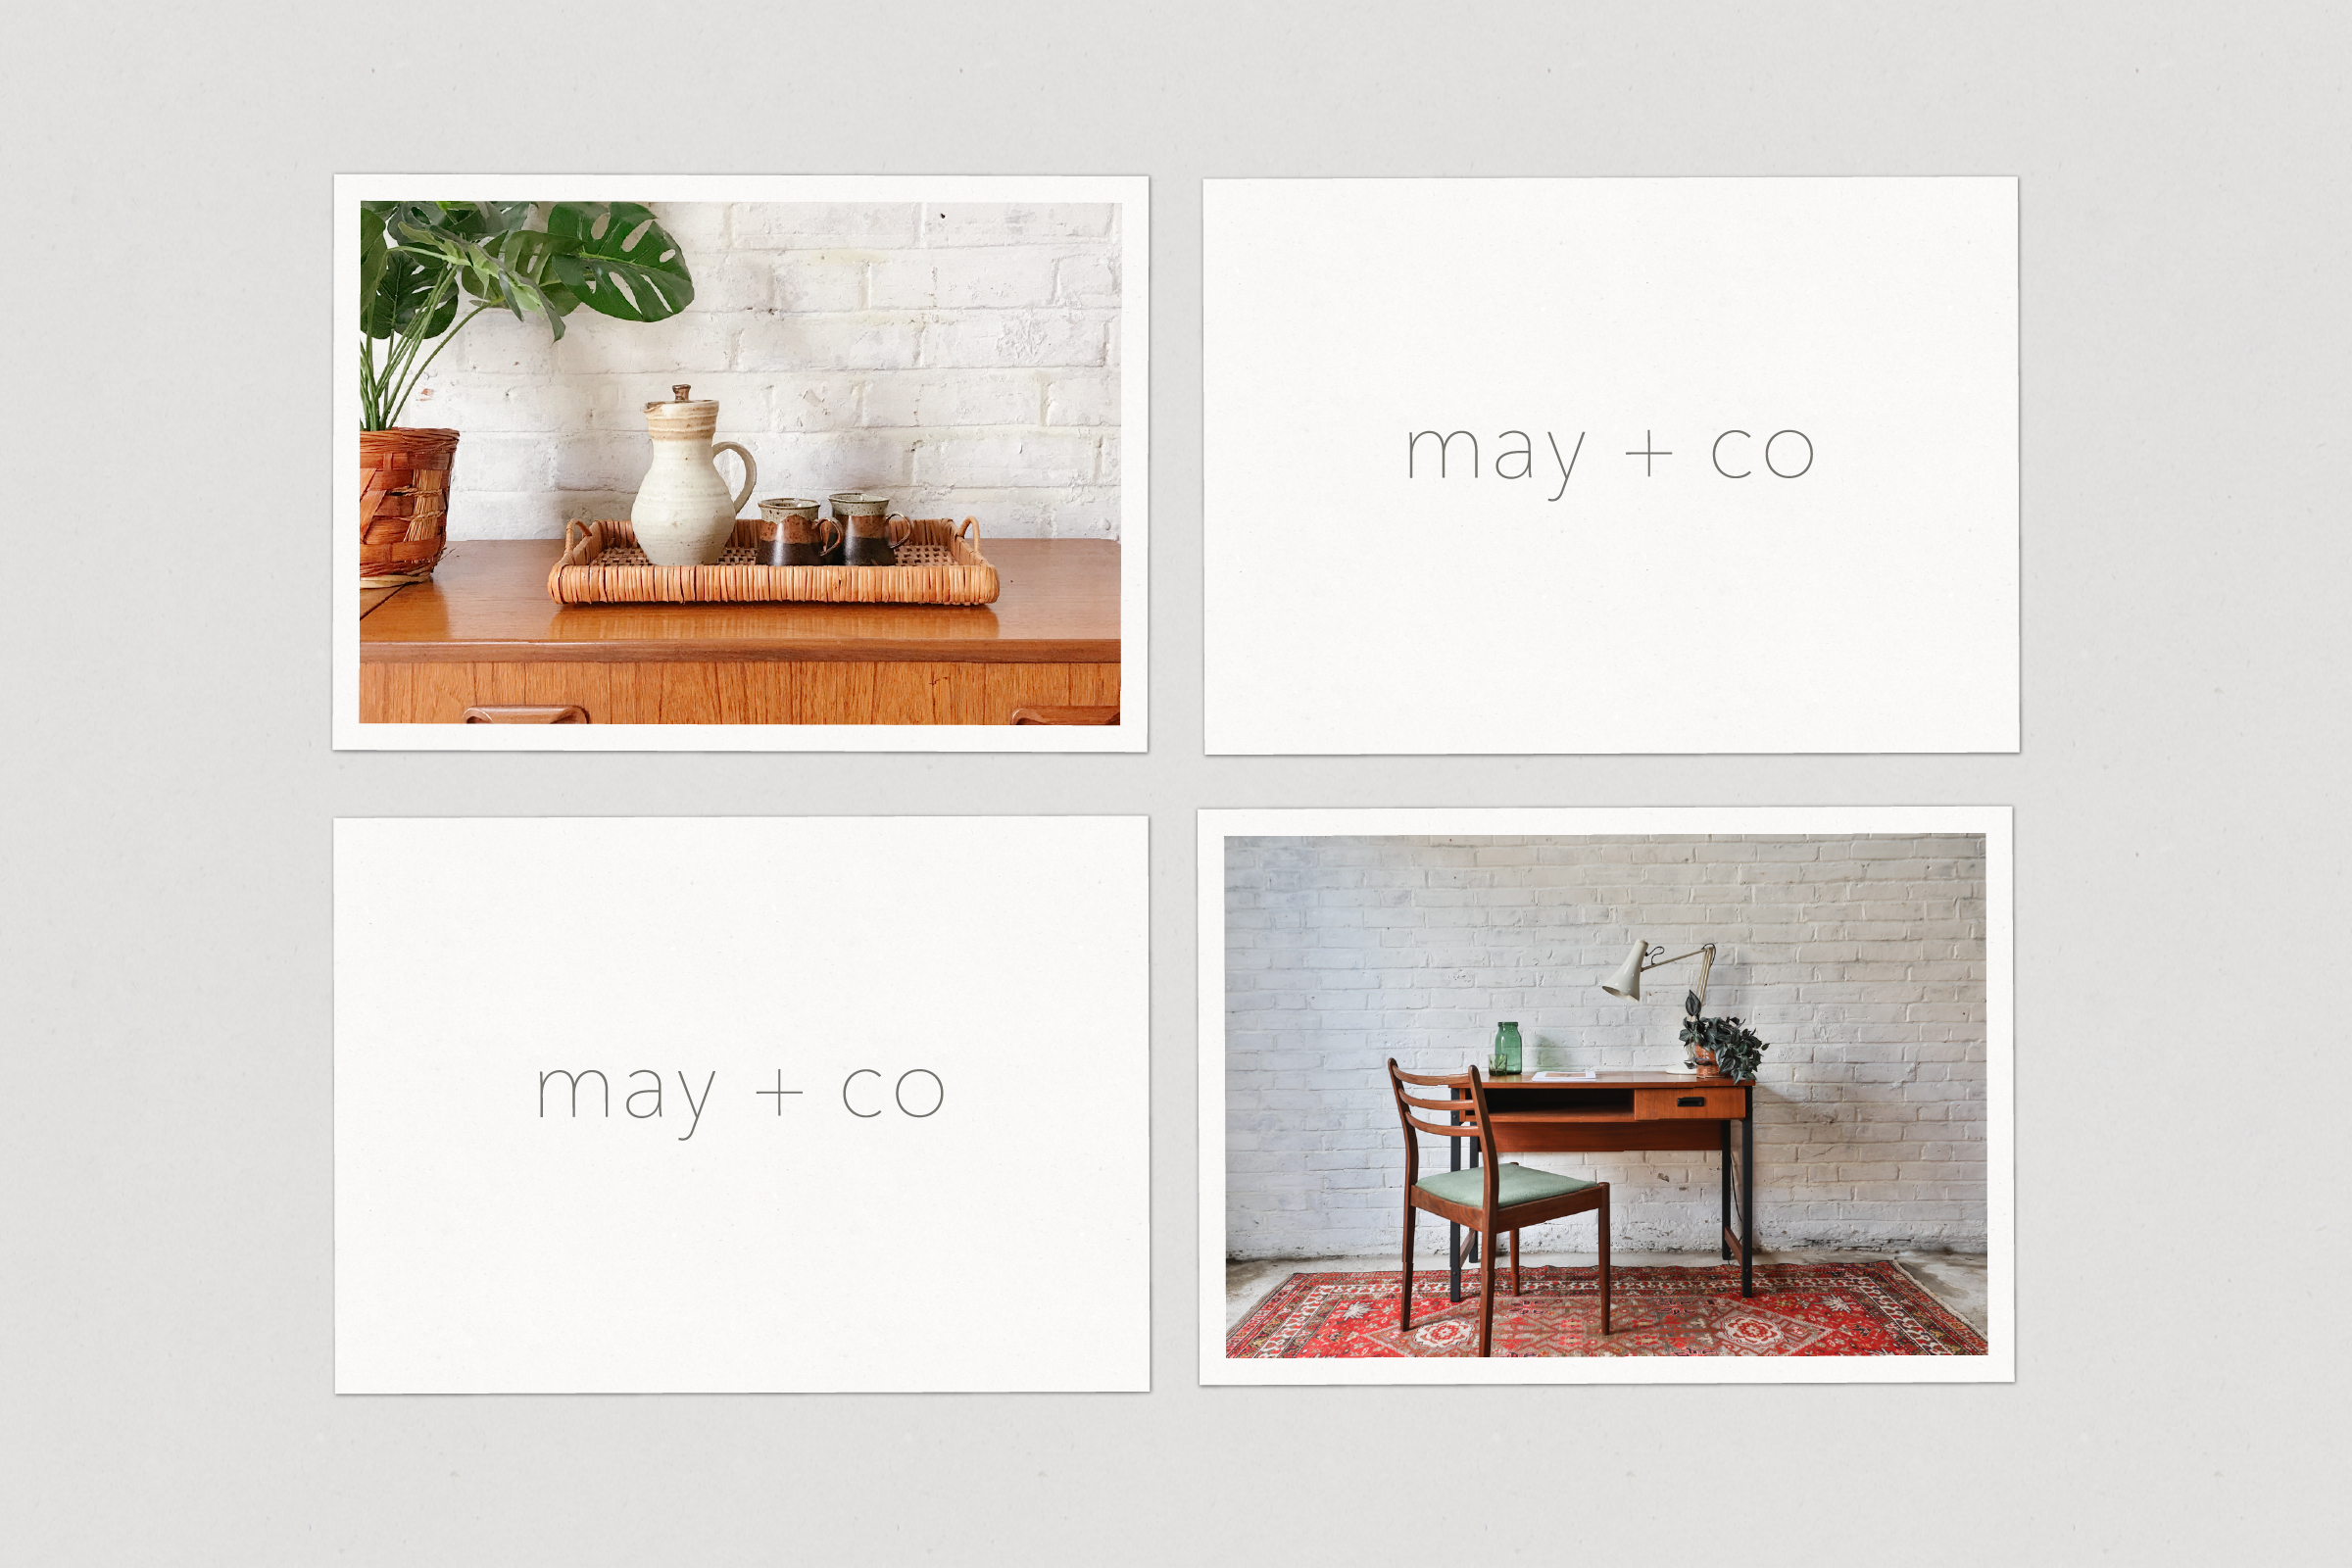 Image of 4 promotional postcards for May + Co